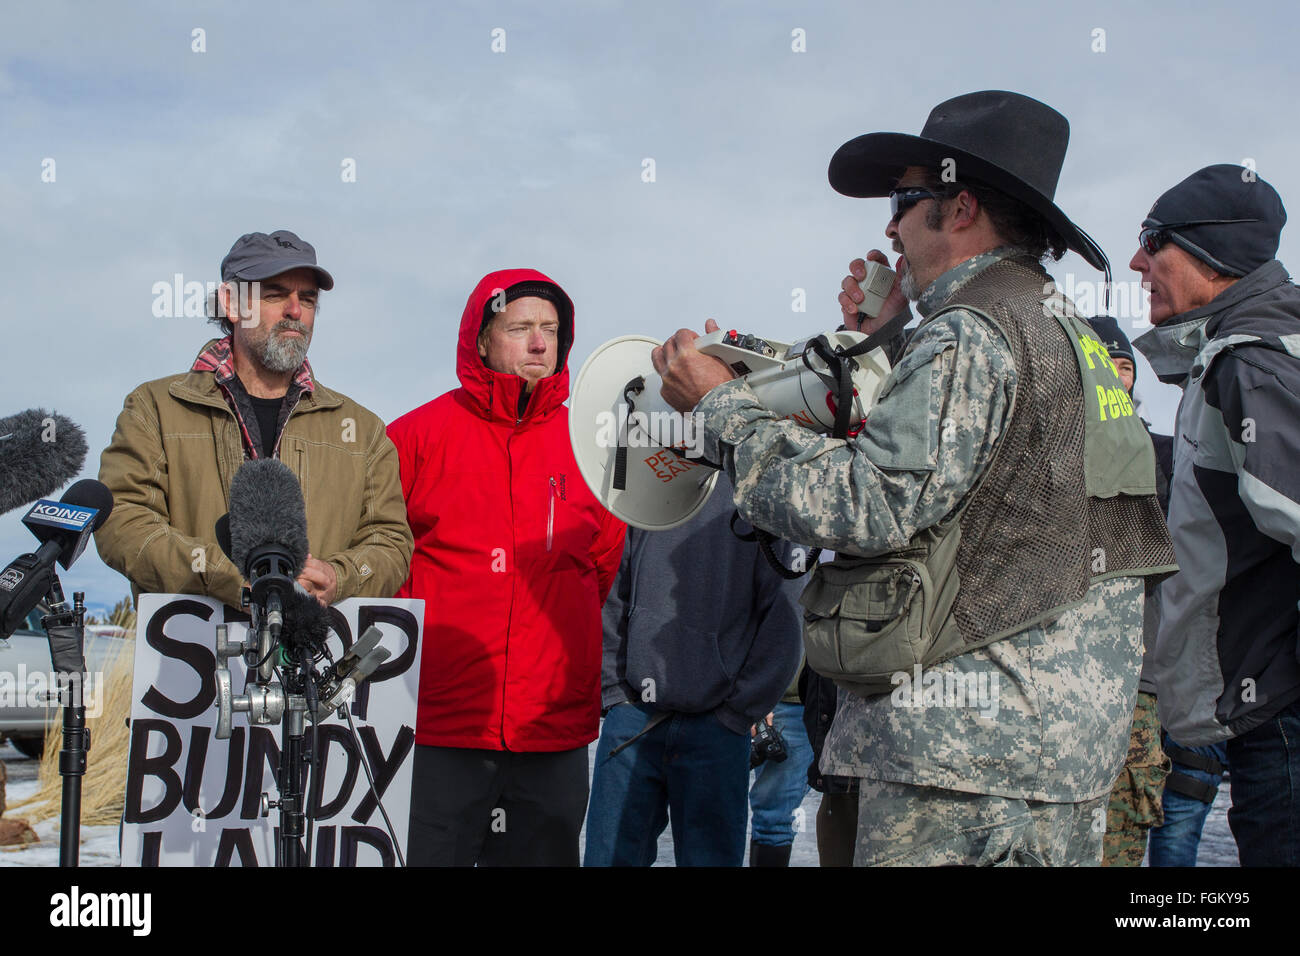 Kieran Suckling and Pete Santilli Faceoff during the Occupation of Malheur National Wildlife Refuge - Stock Image